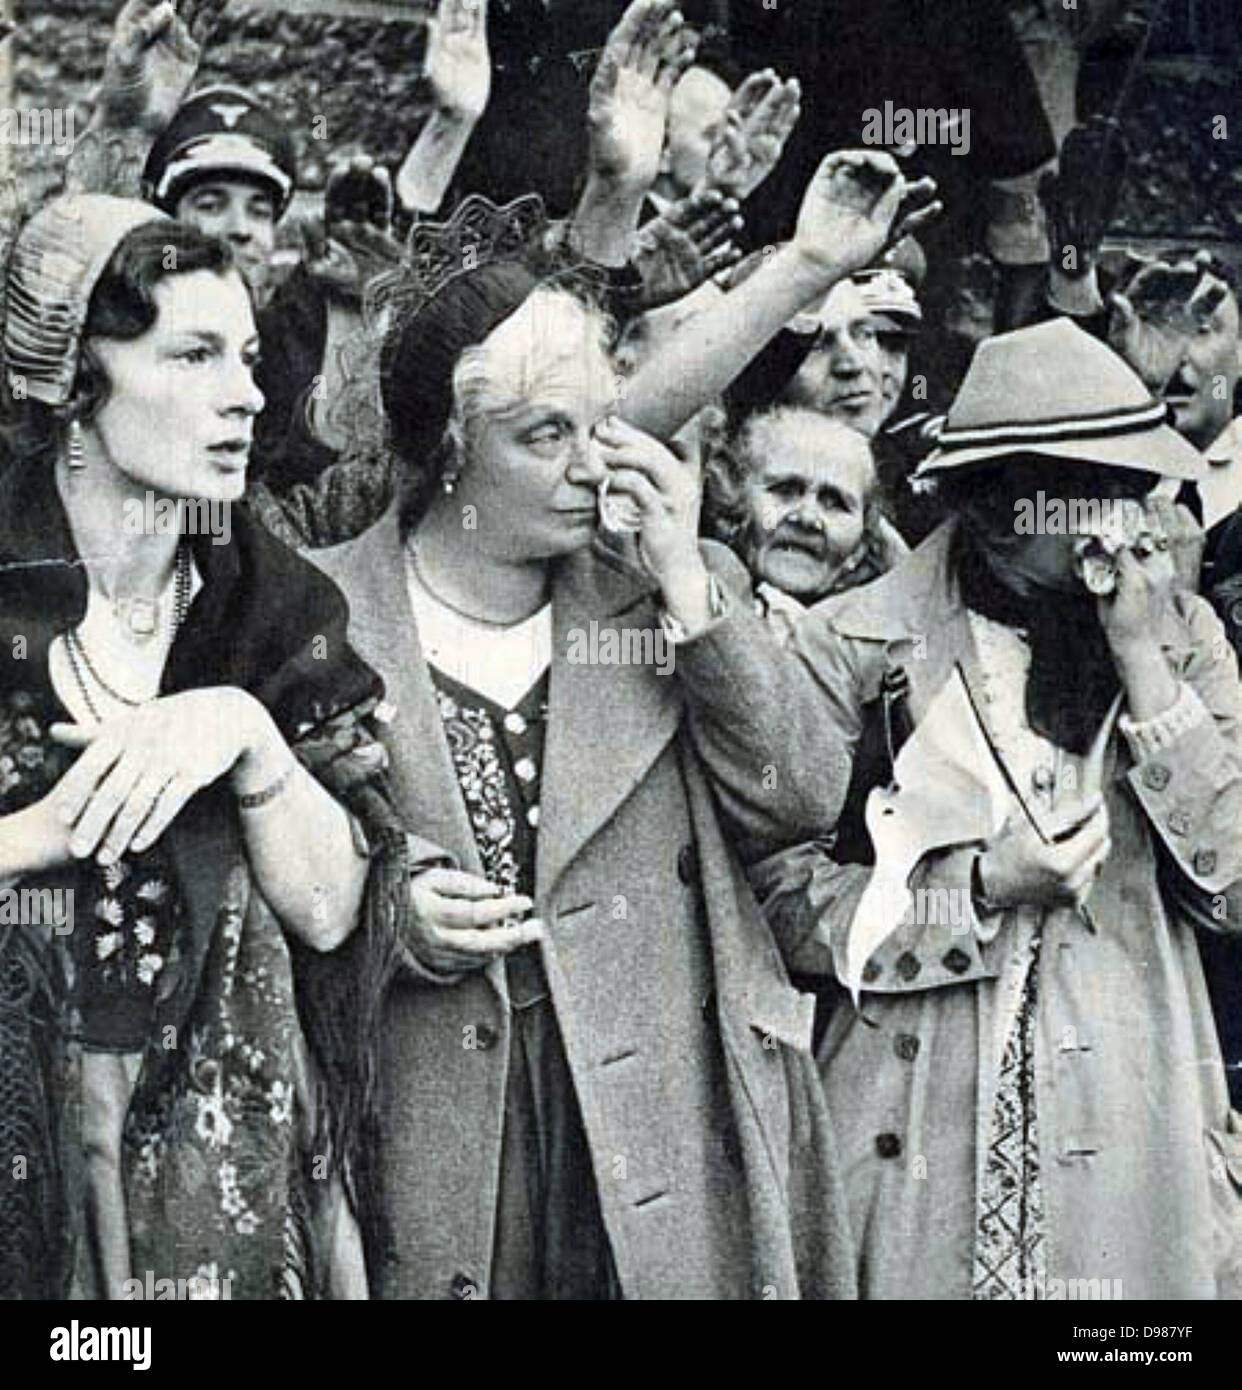 Ethnic Germans In Sudetenland Greet German Forces As They Enter